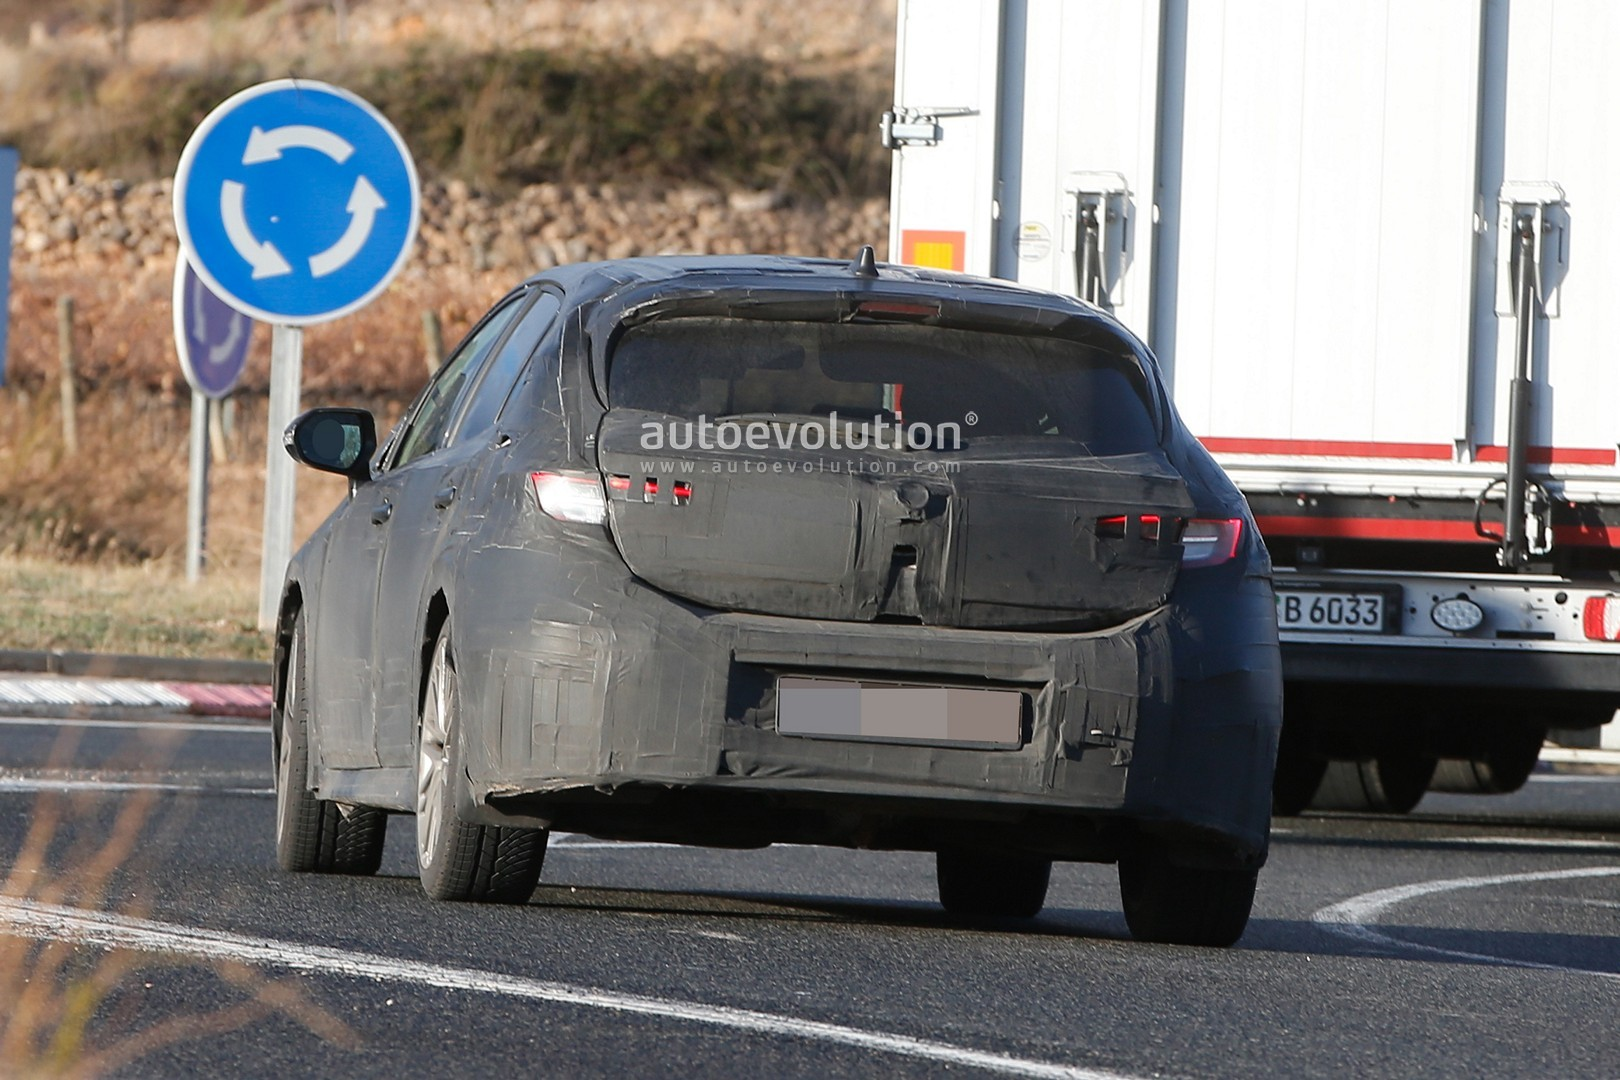 2018 - [Toyota] Corolla 2018 - Page 2 2019-toyota-auris-spied-with-production-body_10